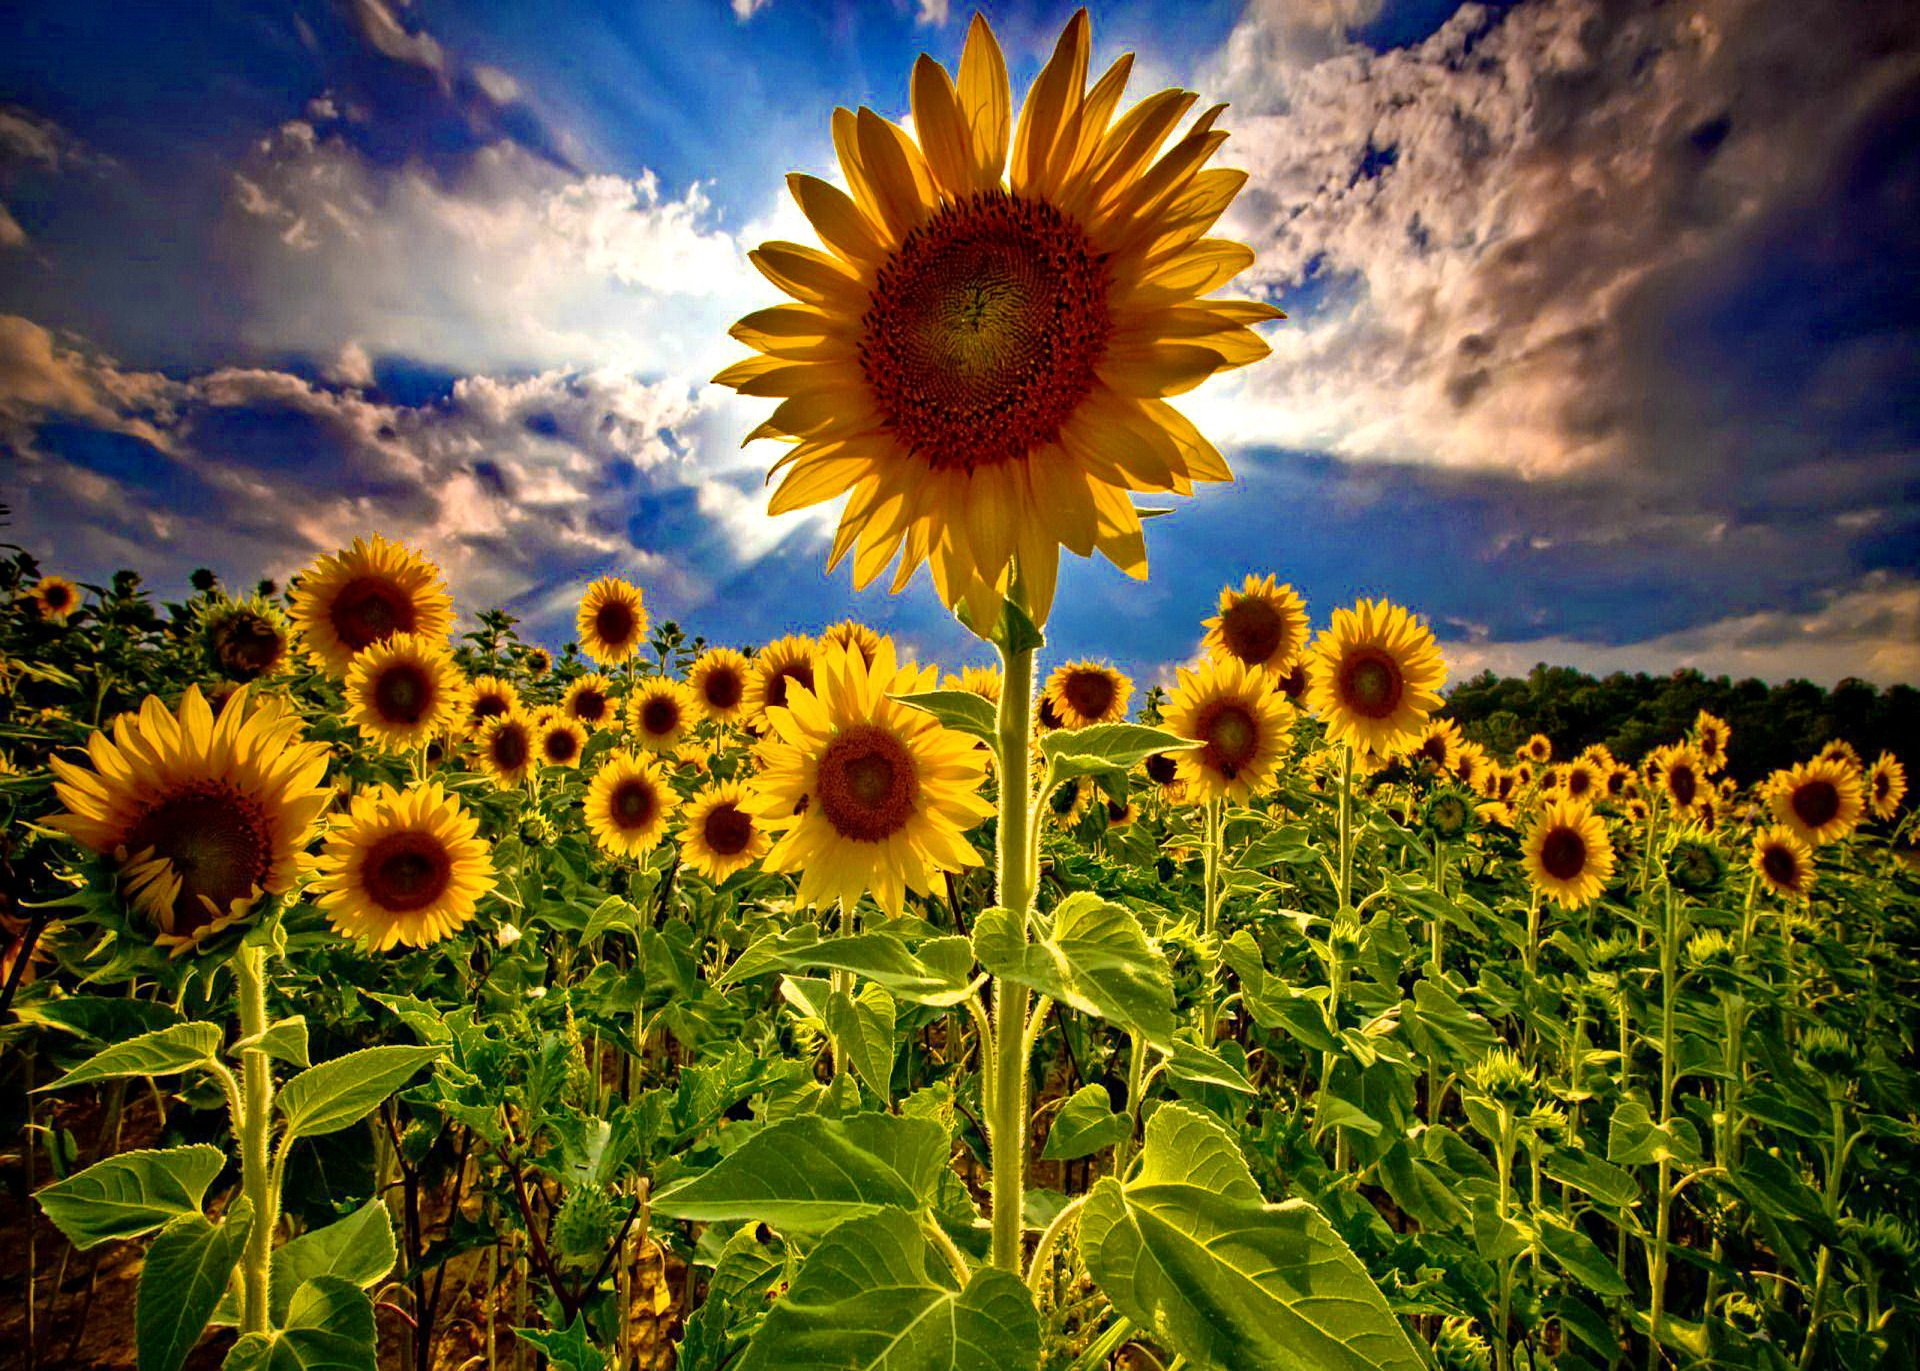 Field Of Sunflowers Wallpapers 1920x1371